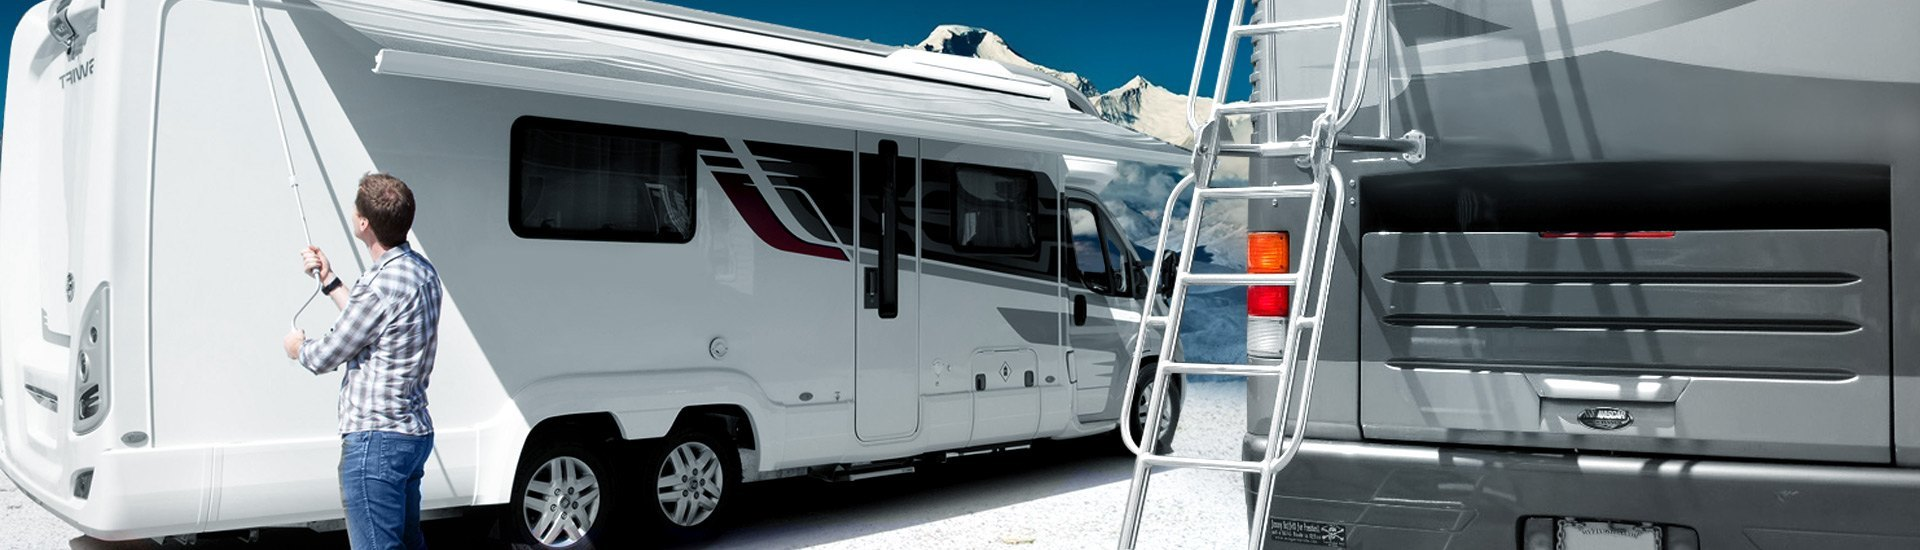 RV Hardware | A/C, Vents, Steps, Awnings, Lift Supports - CAMPERiD com